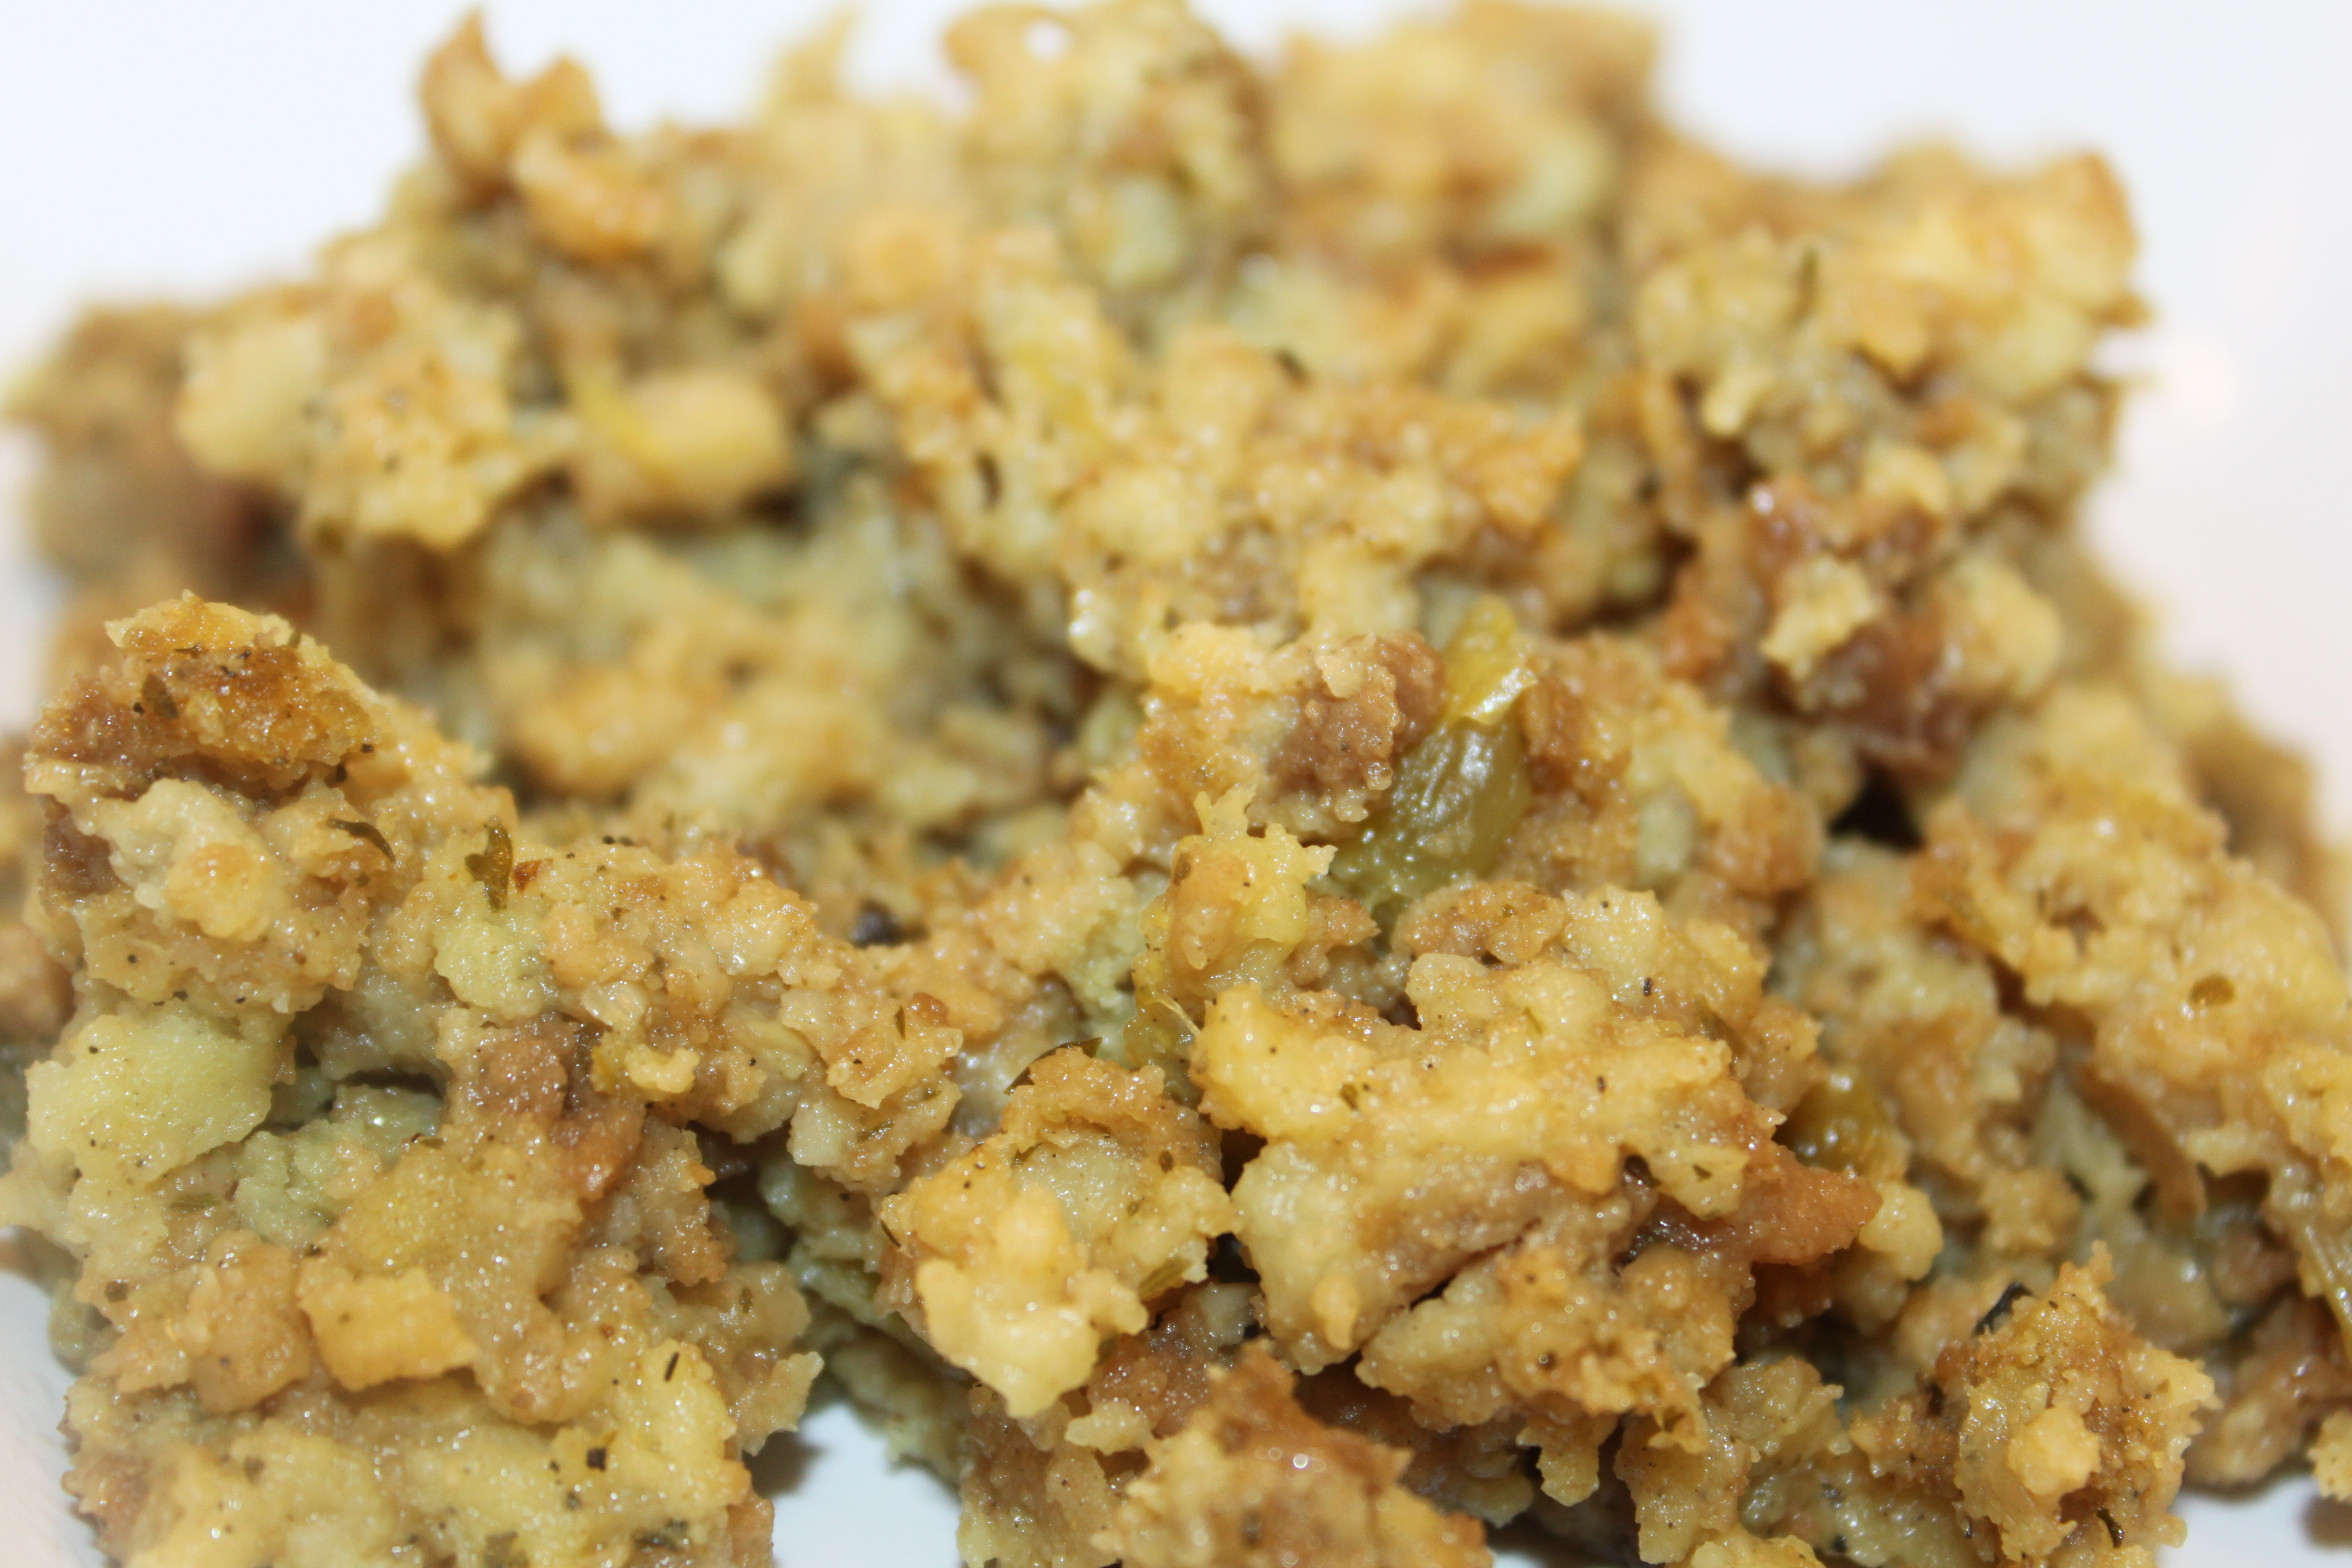 Classic Turkey Recipes Thanksgiving  Classic Stuffing Recipe Just The Way My Parents Made It